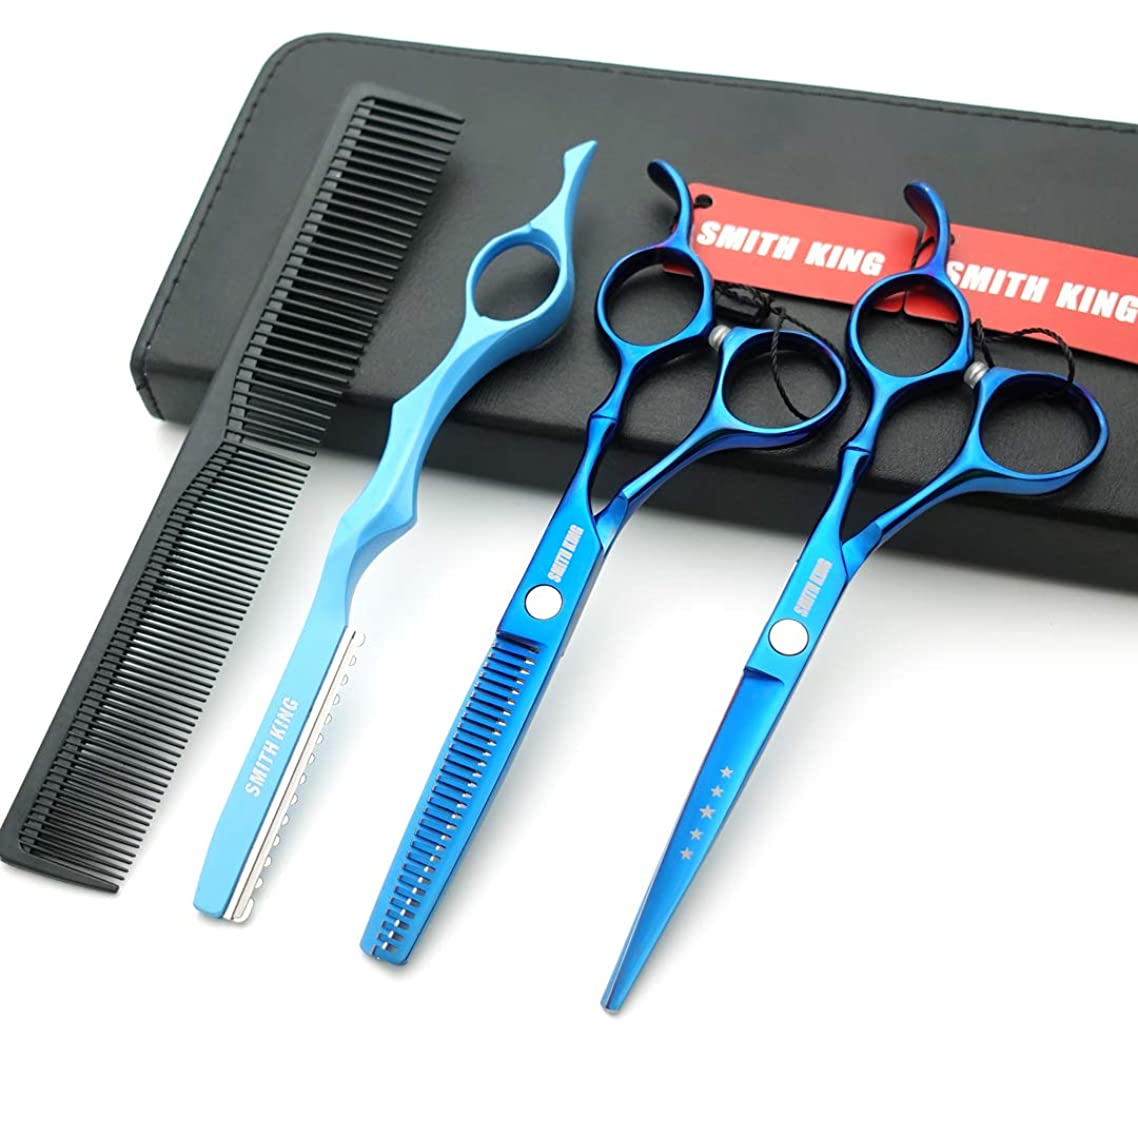 6.0 Inches Professional hair cutting thinning scissors set with razor (Blue)